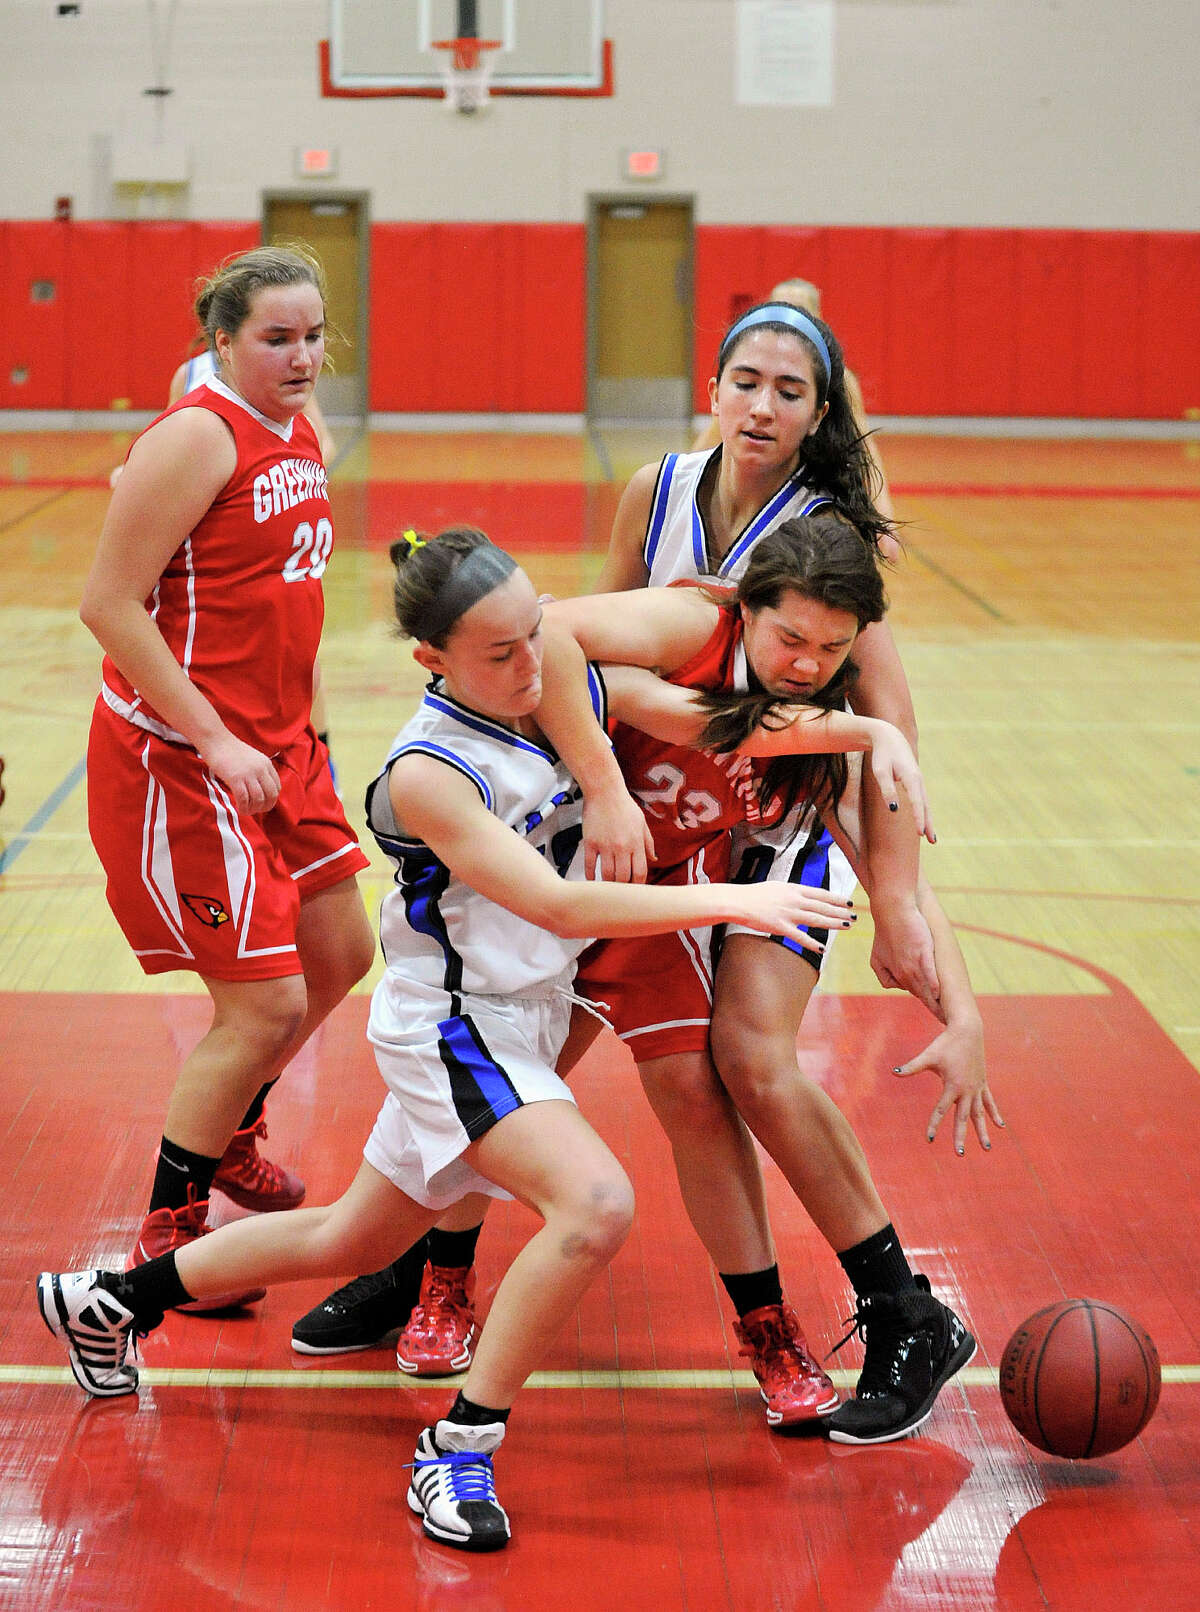 Darien's Avery Maley, left, and Julia Cornacchia battle Greenwich's Jamie Kockenmeister for the ball during the championship final of the 19th annual Tony LaVista Basketball Tournament at New Canaan High School in New Canaan, Conn., on Monday, Dec. 30, 2013. Greenwich won 66-36.